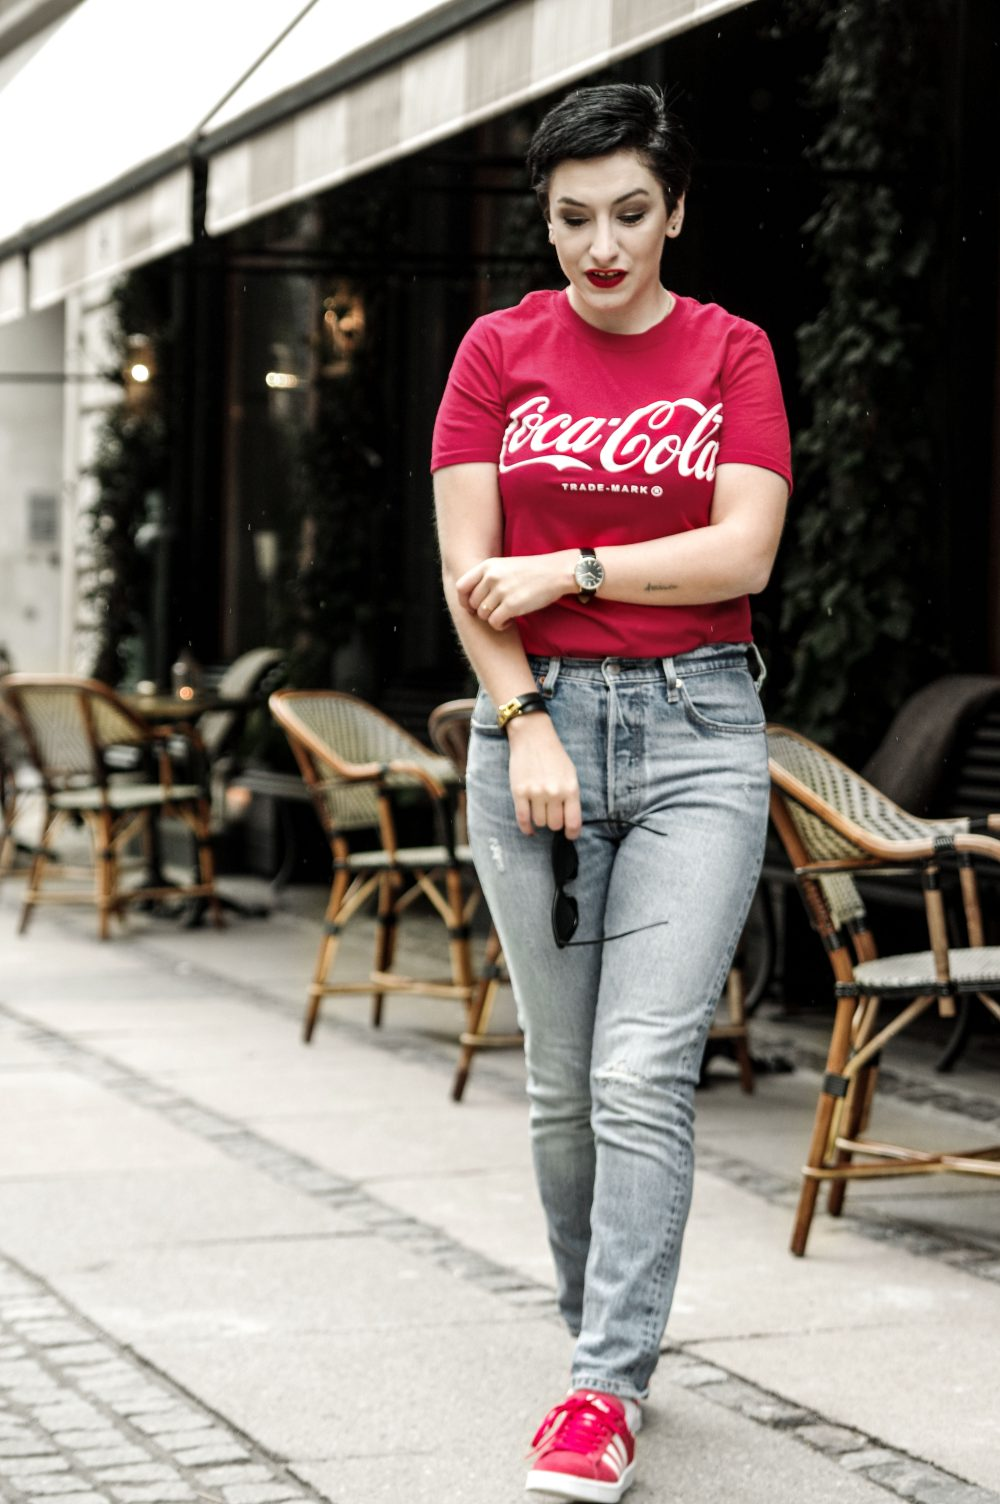 coca cola t shirt, spring outfit, streetstyle, scandinavian fashion